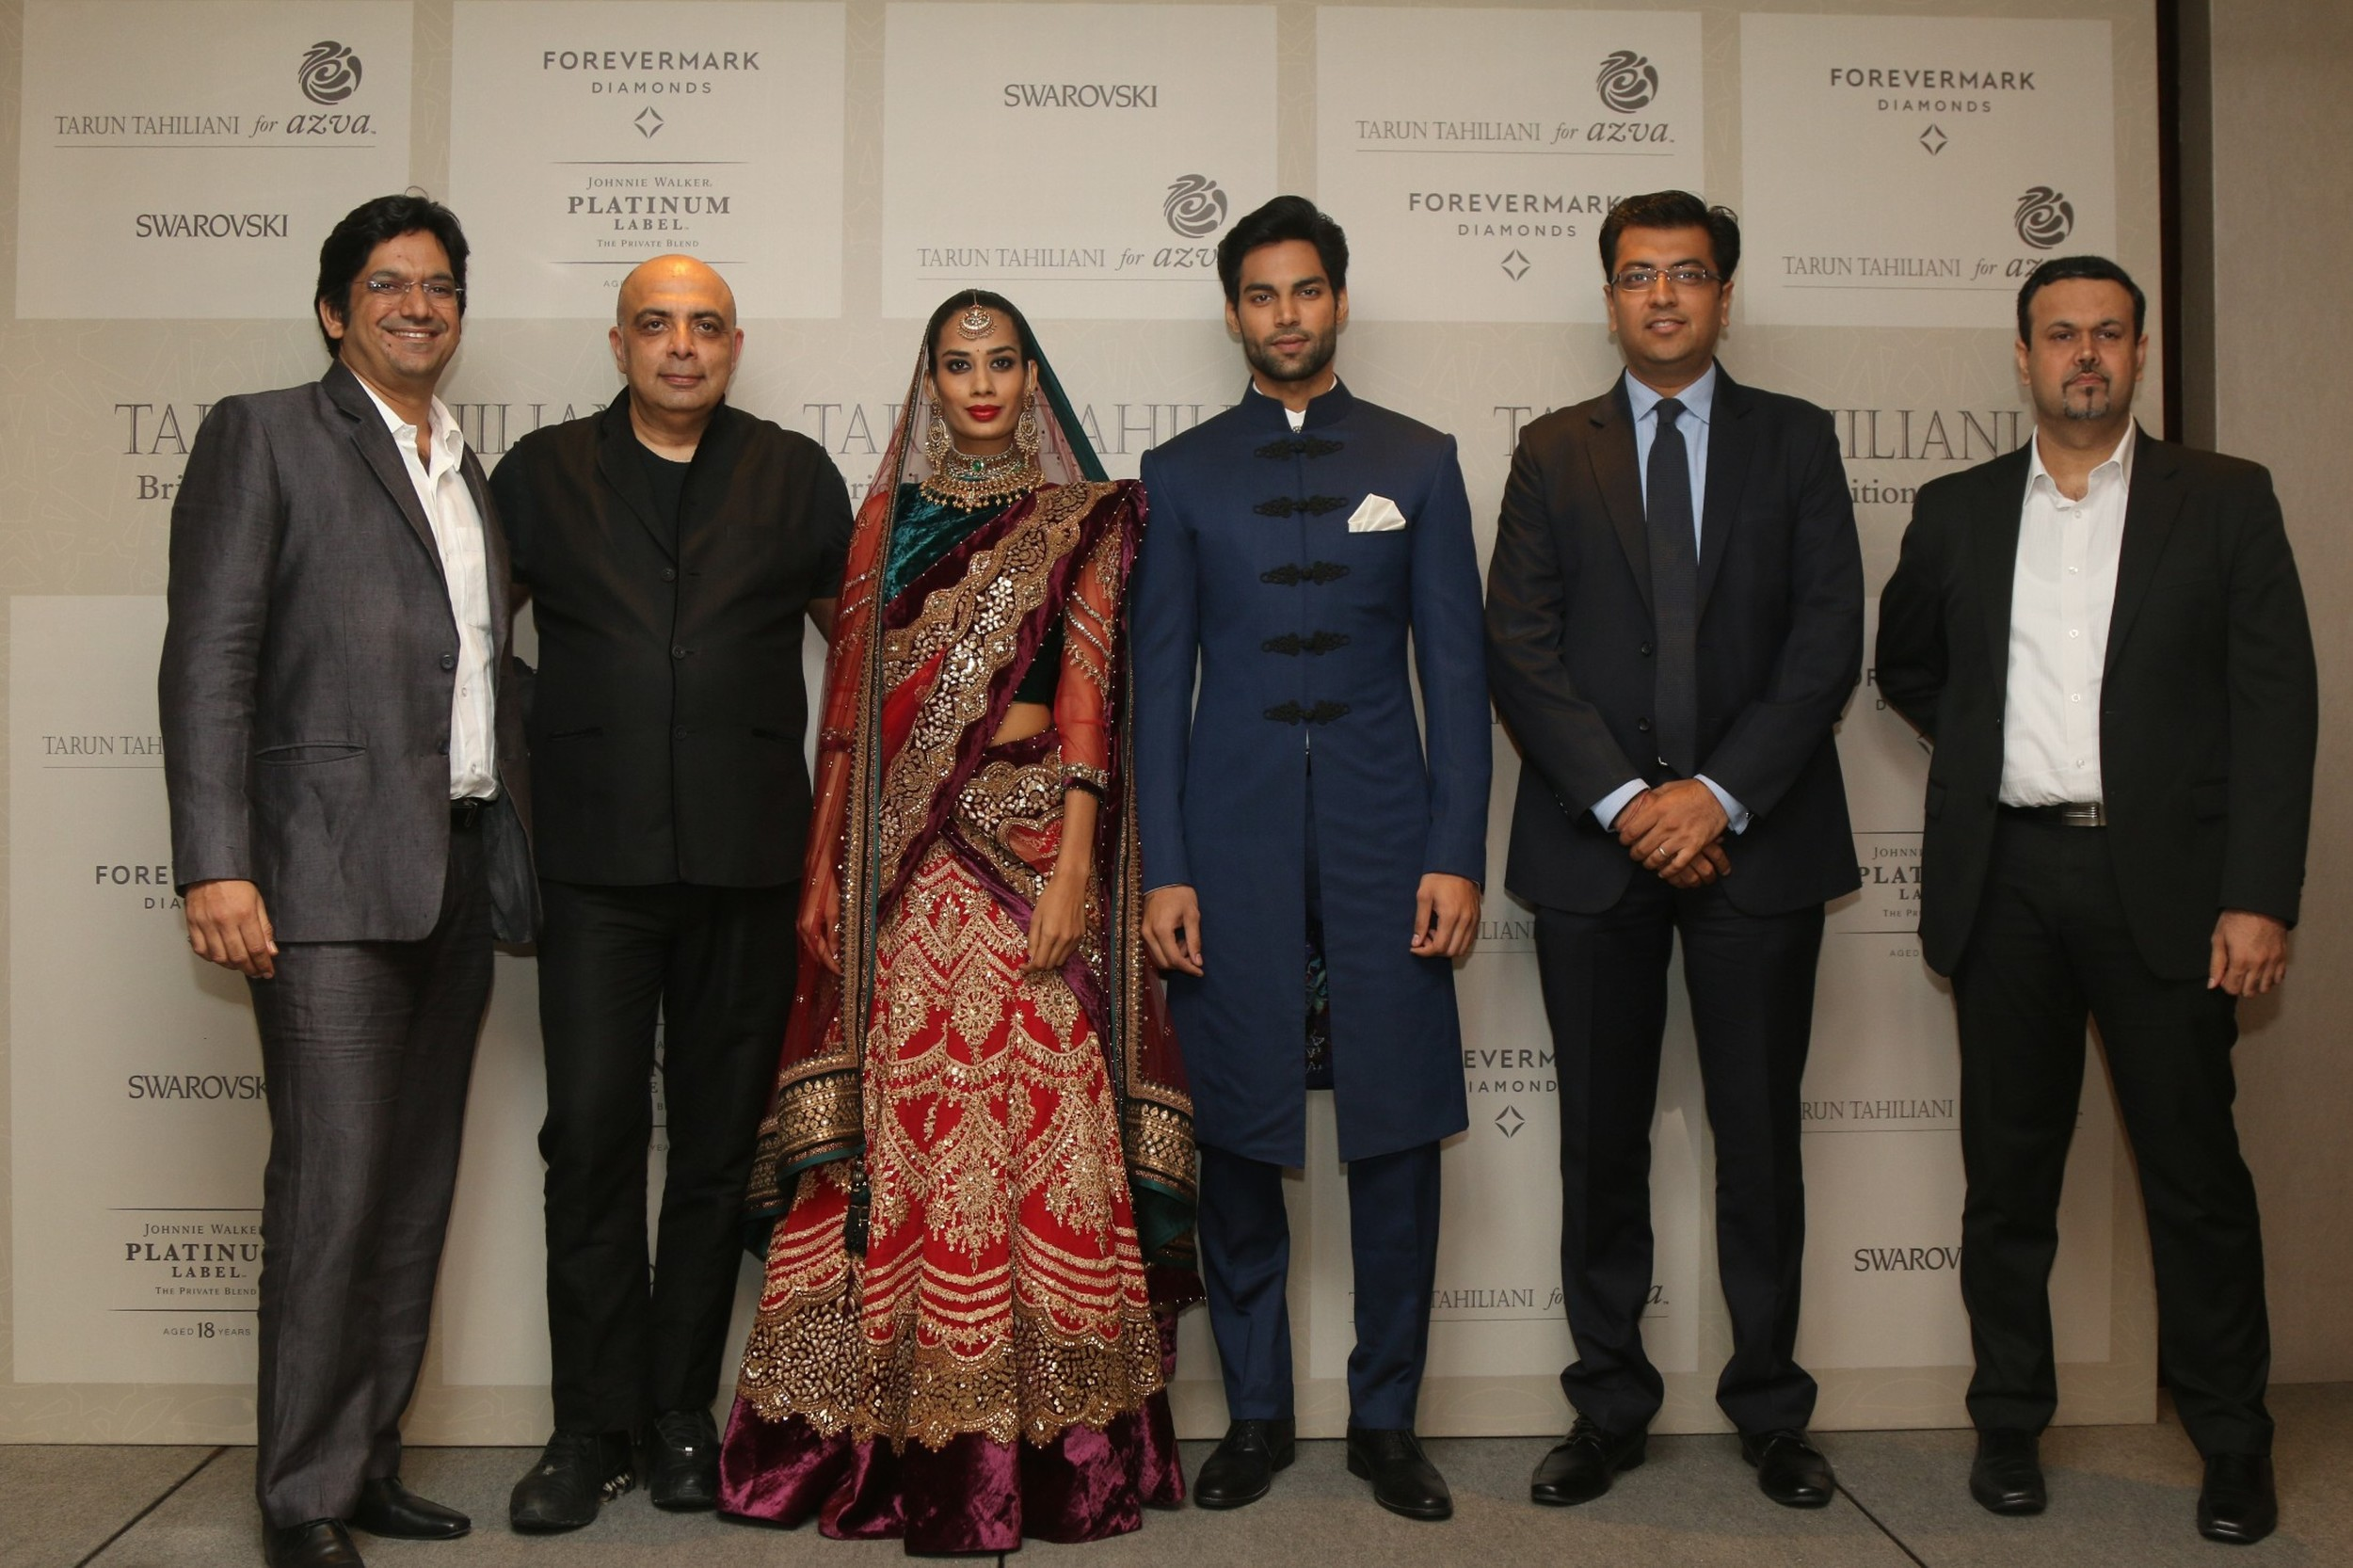 Vipin Sharma, DIrector Jewlery WGC, Tarun Tahiliani,Collection, Sachin Jain, MD Forevermark India, Bhavesh Somaia, Mrktng and Innovation Director,Diageo India